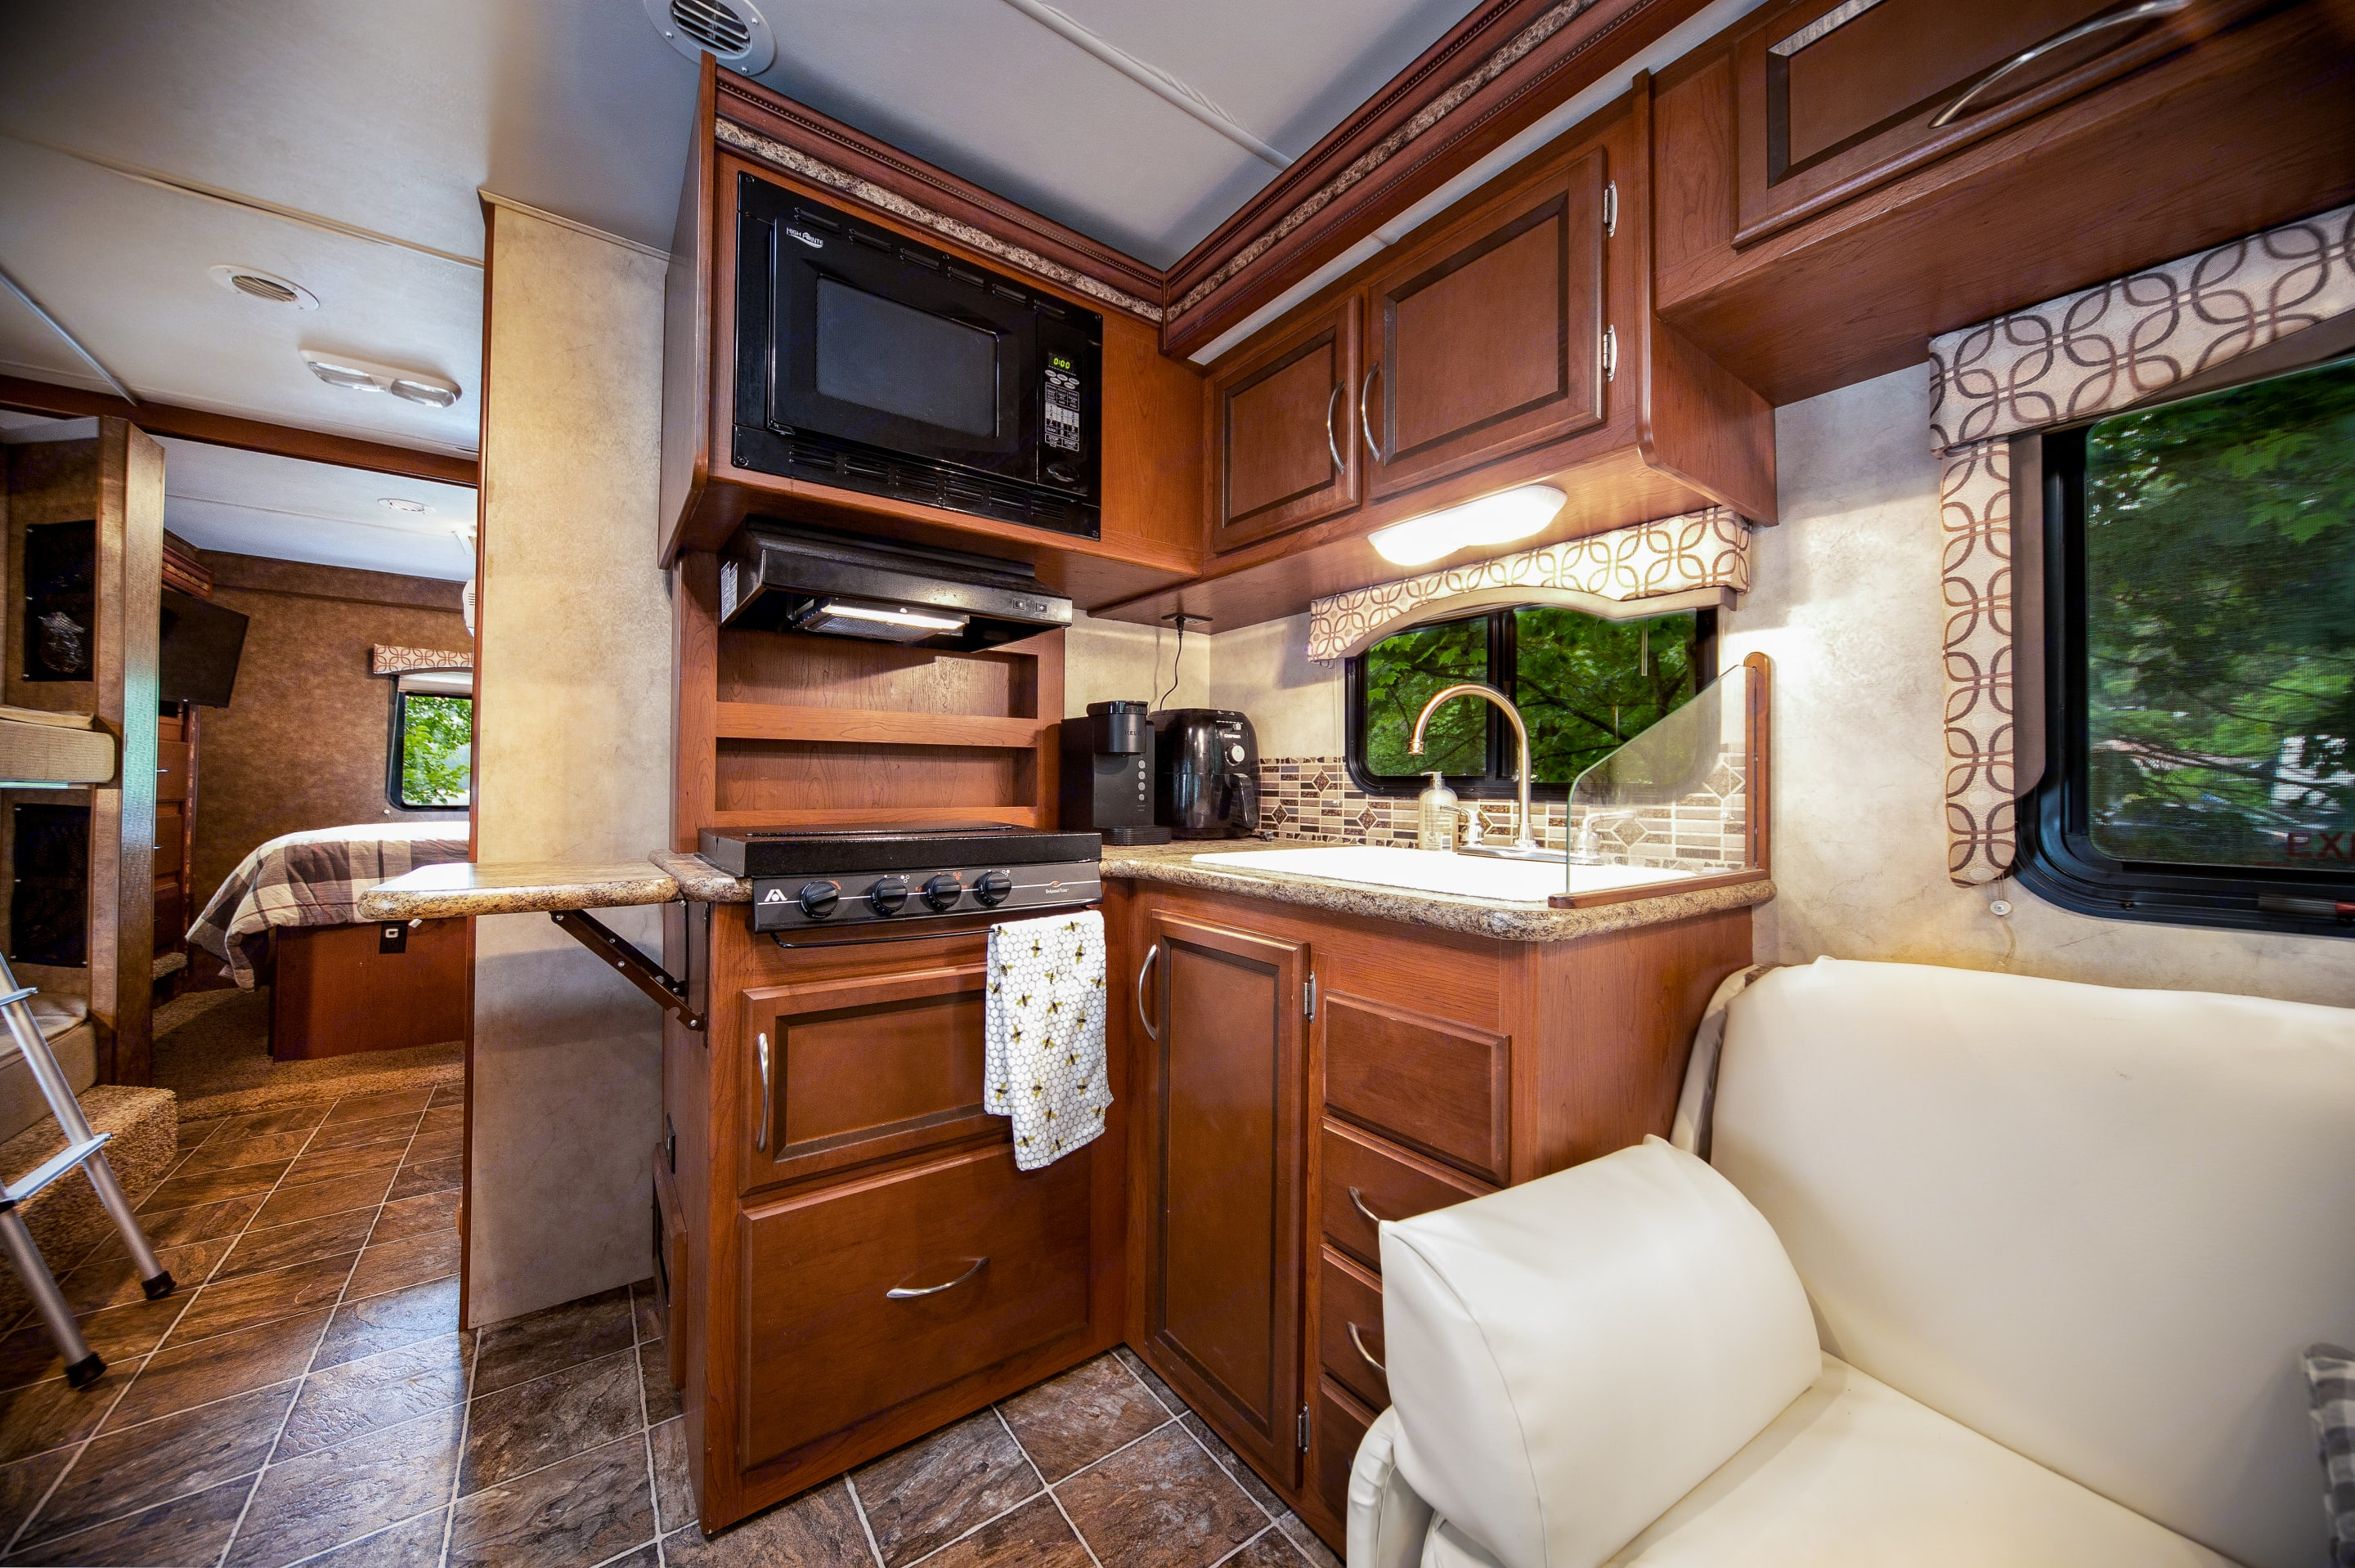 Kitchen area includes a sink, microwave, propane stove top, Keurig and air fryer.. Thor Motor Coach Four Winds 2013